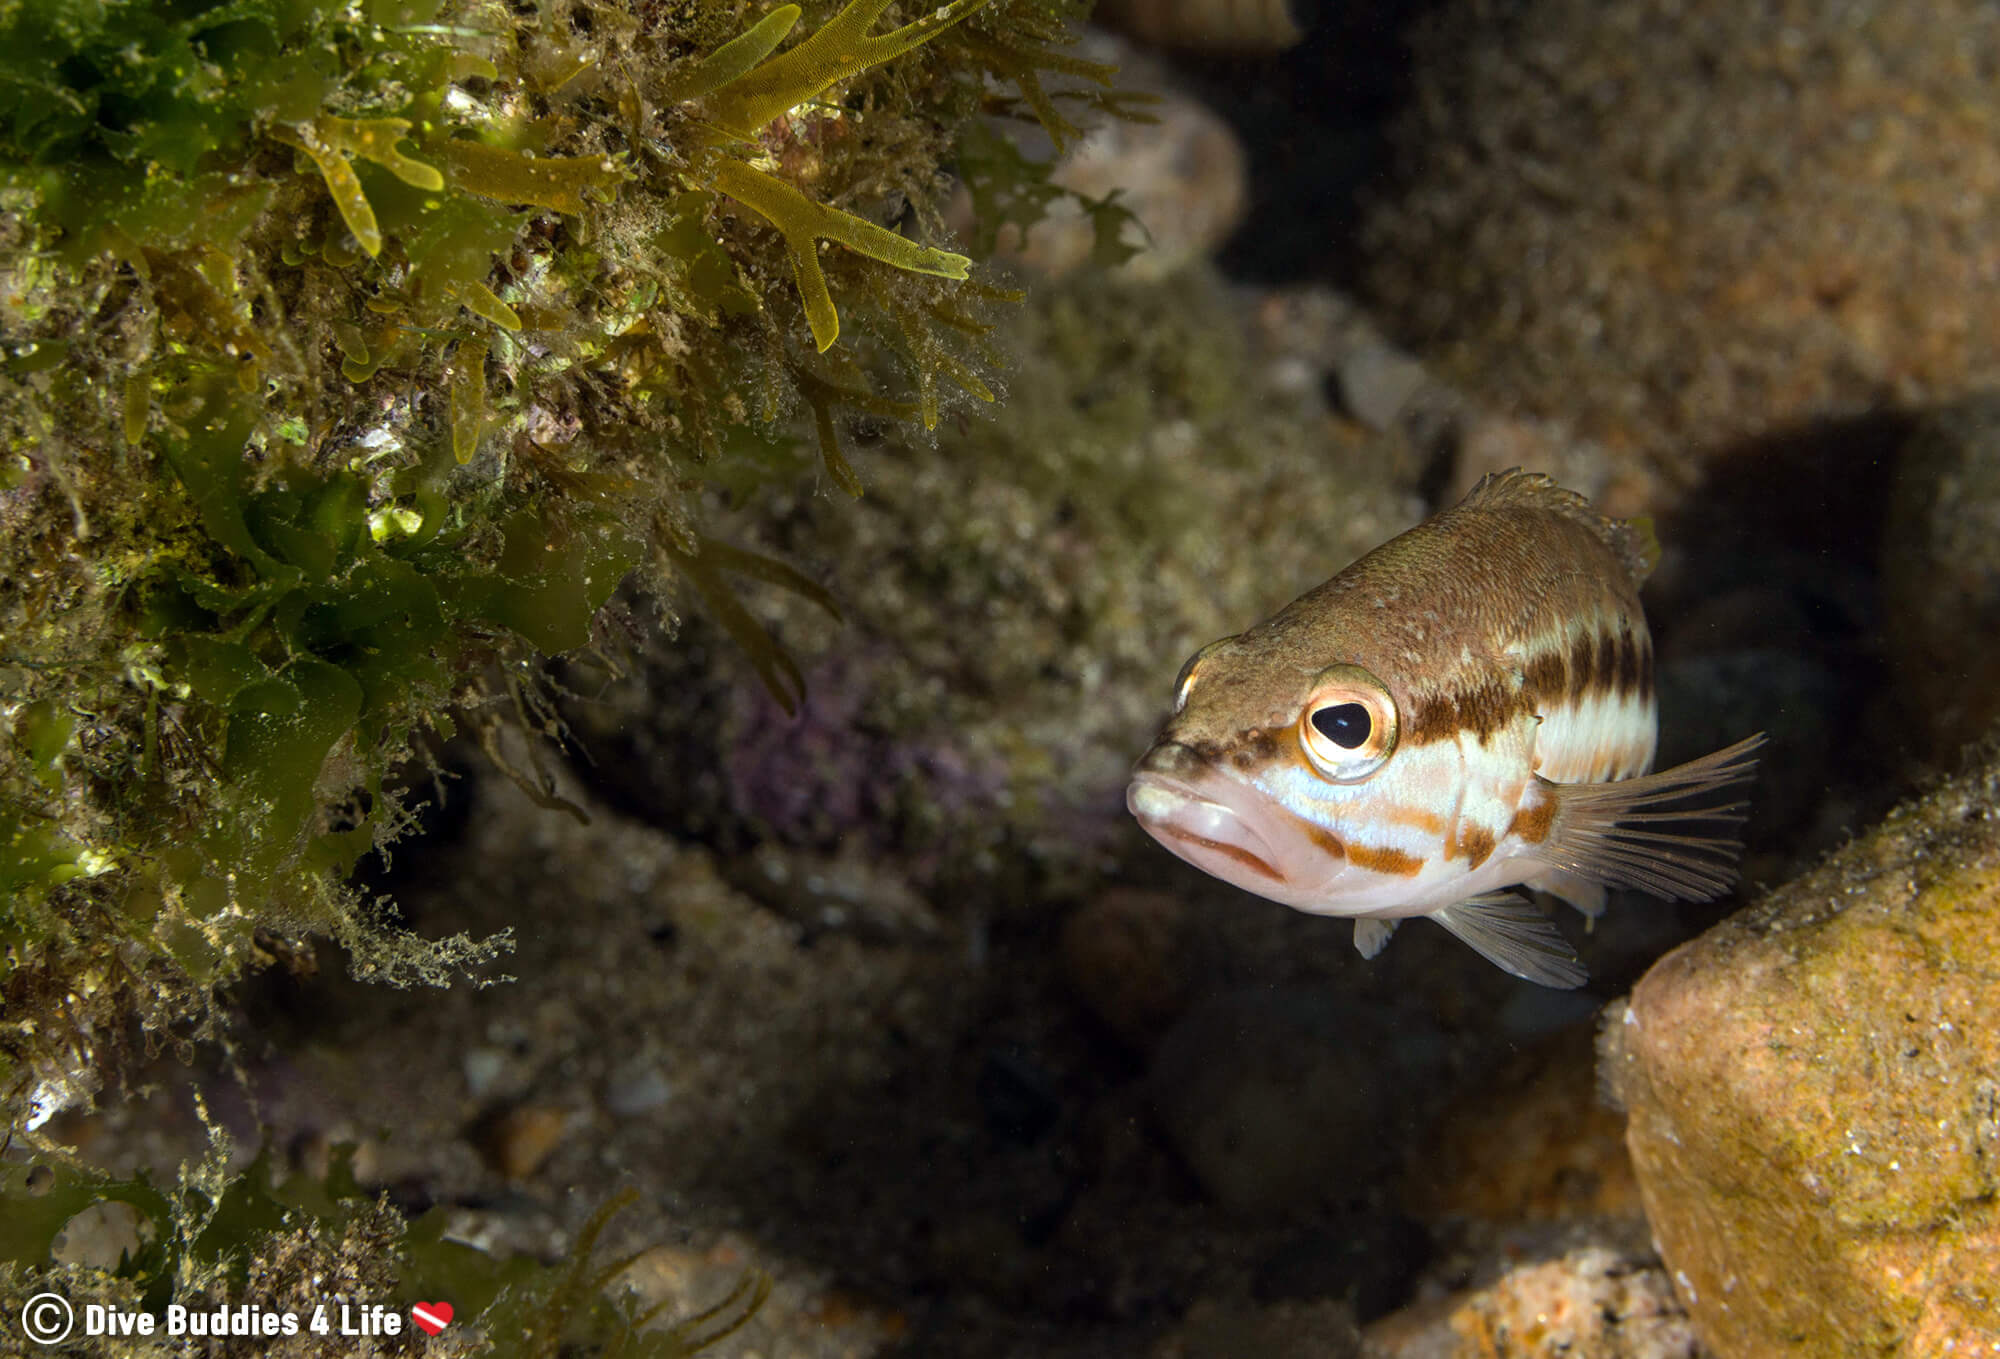 A Fish Swimming In A Rocks Crevasse On The Famous Costa Brava In Spain, Europe